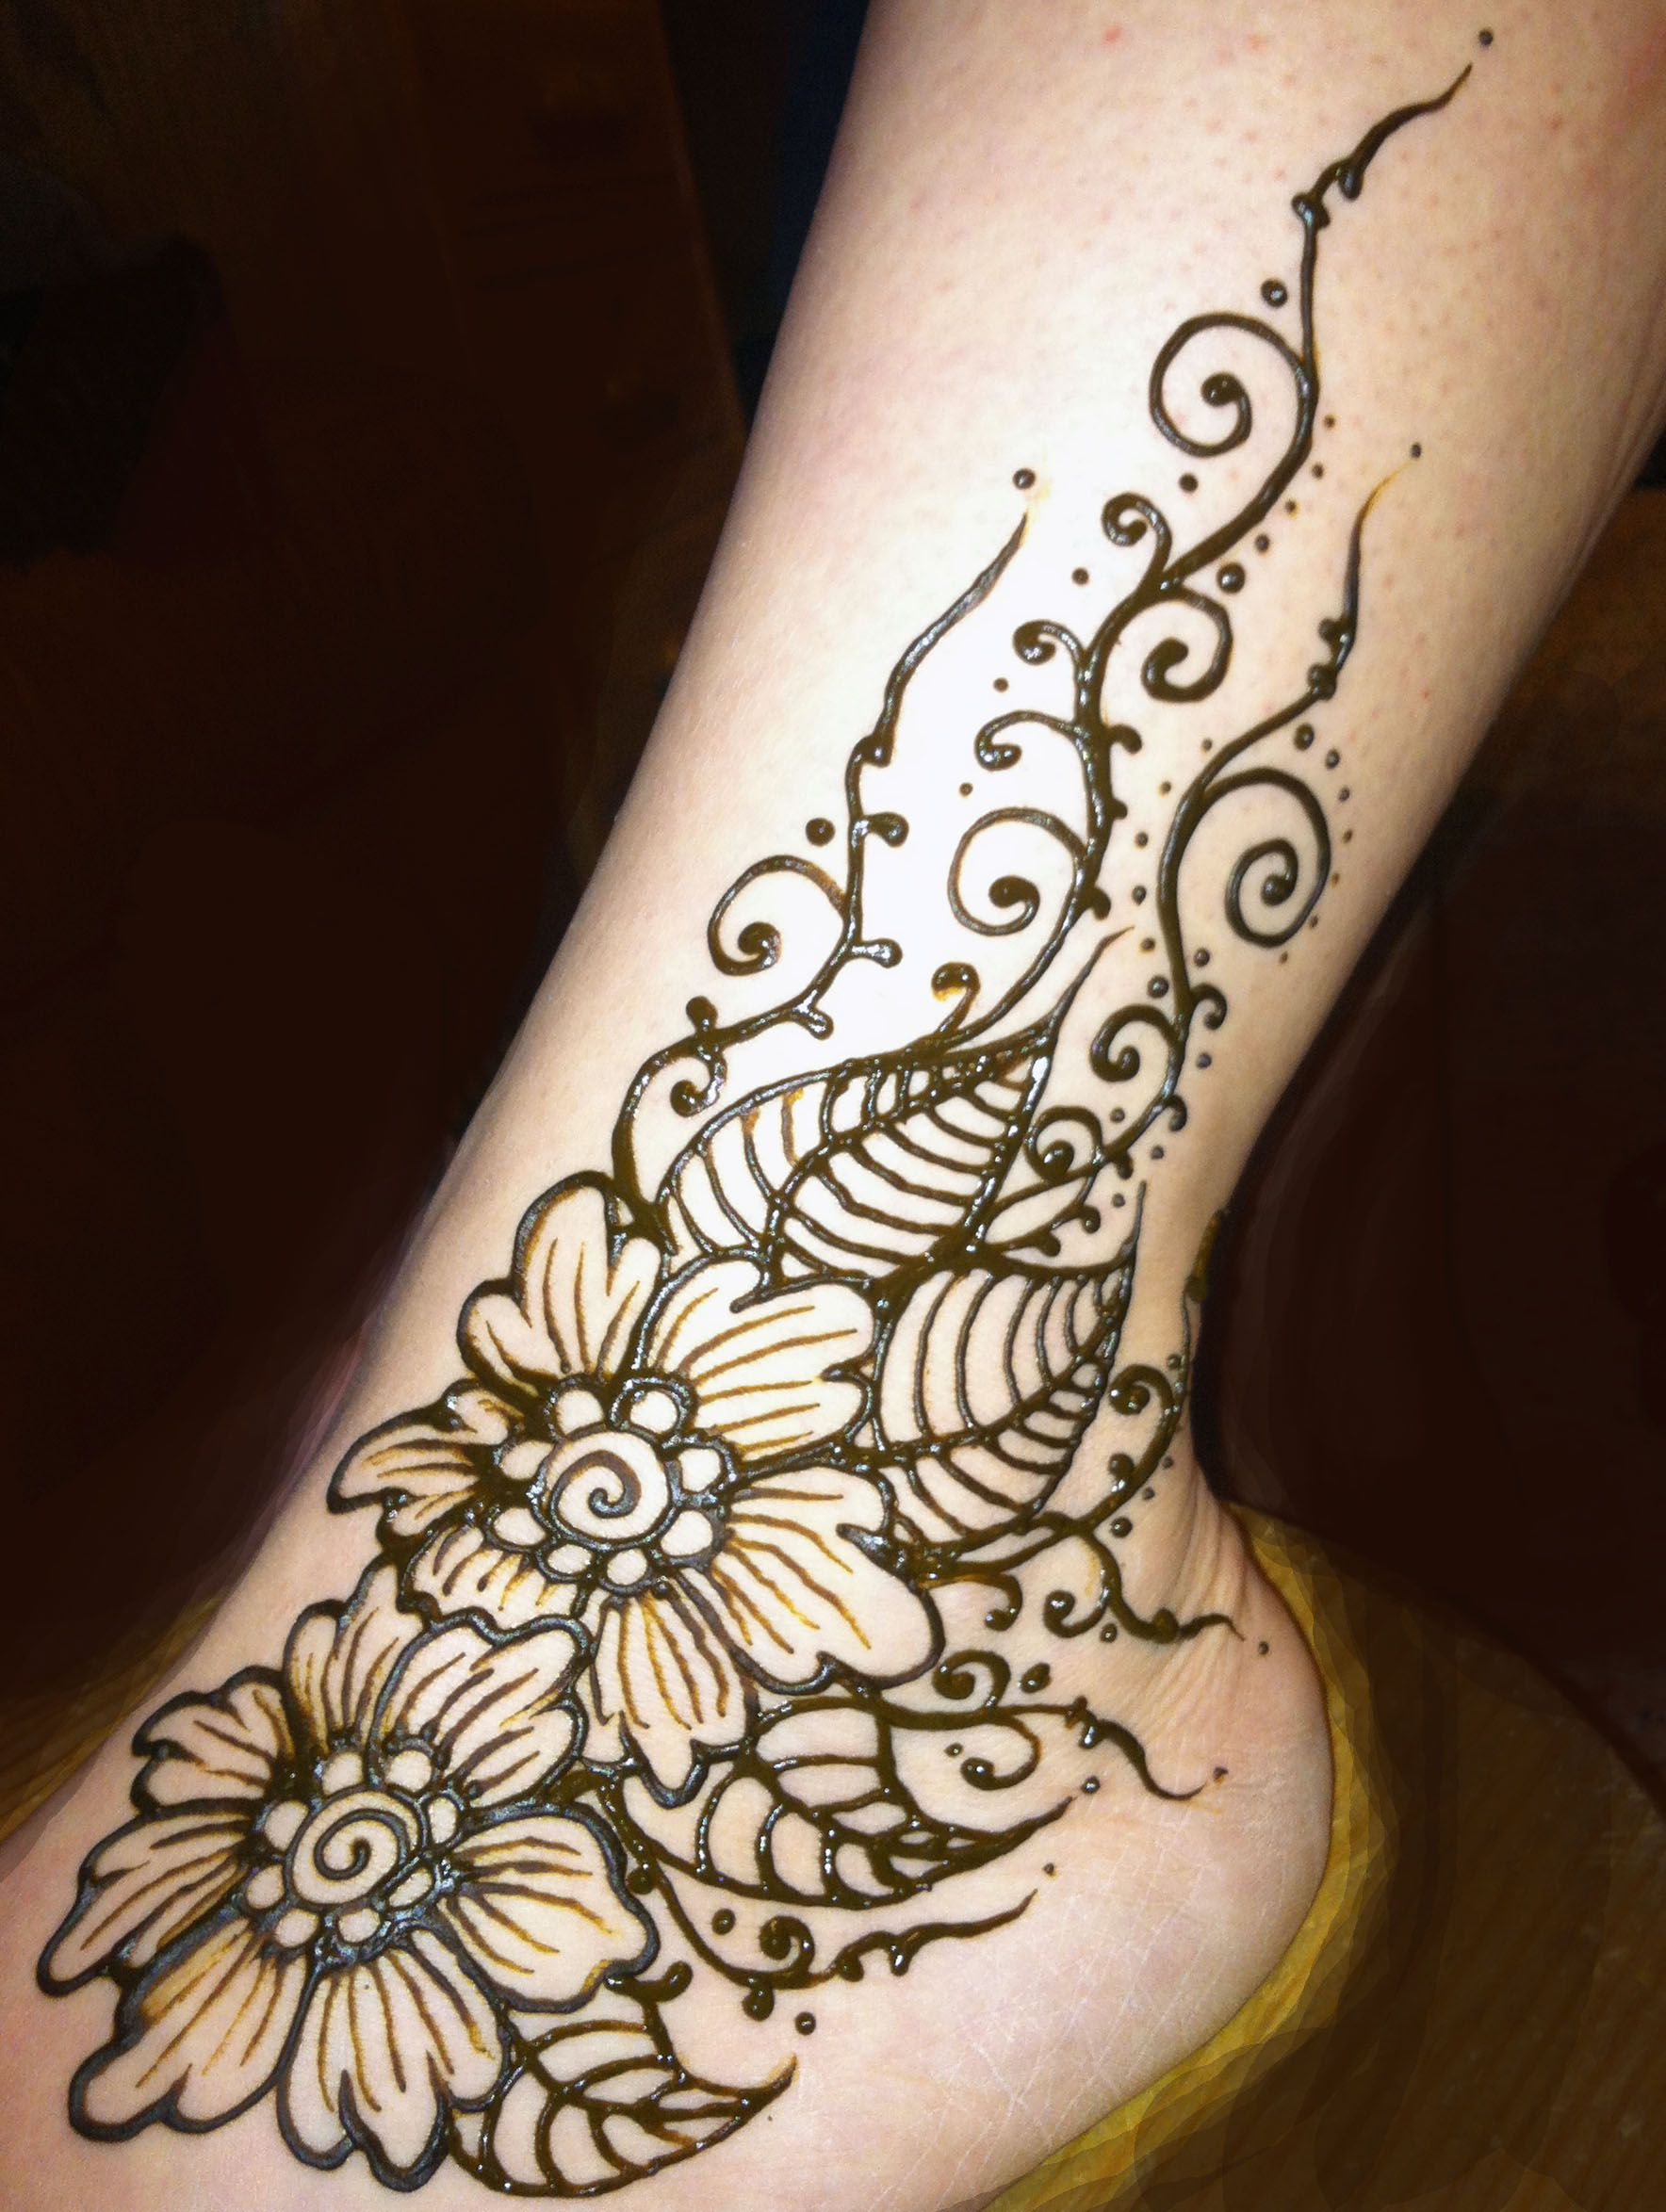 Henna Flowered Ankle | Henna By Cynthia Ann McDonald ...